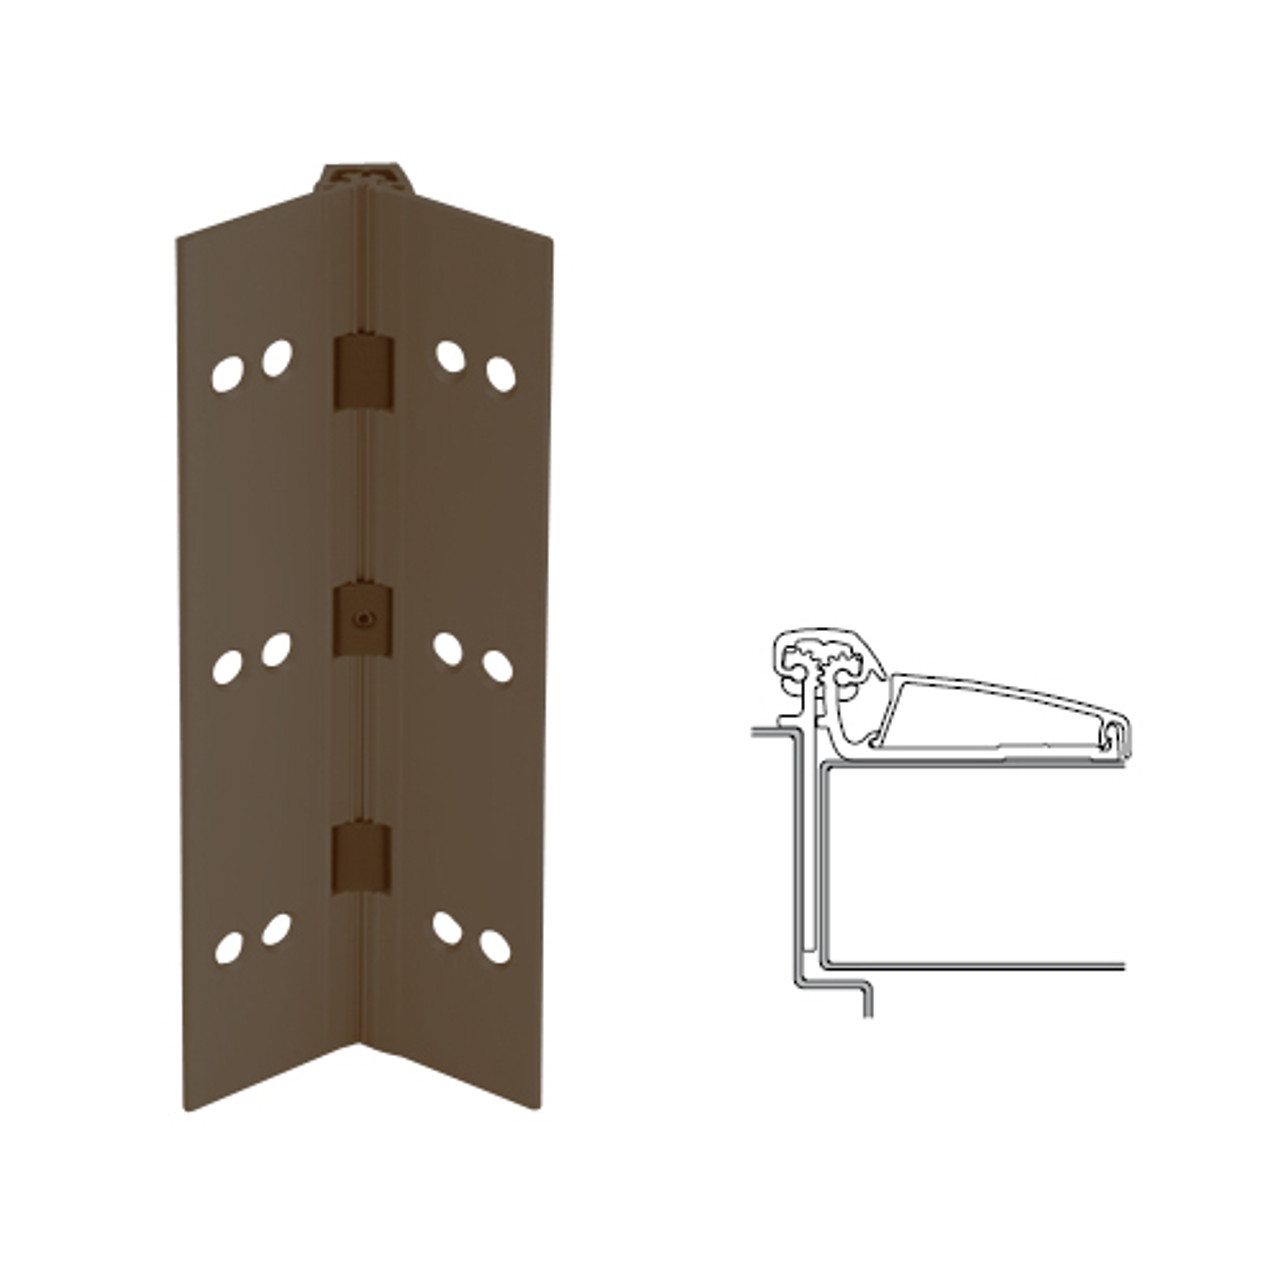 046XY-313AN-85-TFWD IVES Adjustable Half Surface Continuous Geared Hinges with Thread Forming Screws in Dark Bronze Anodized